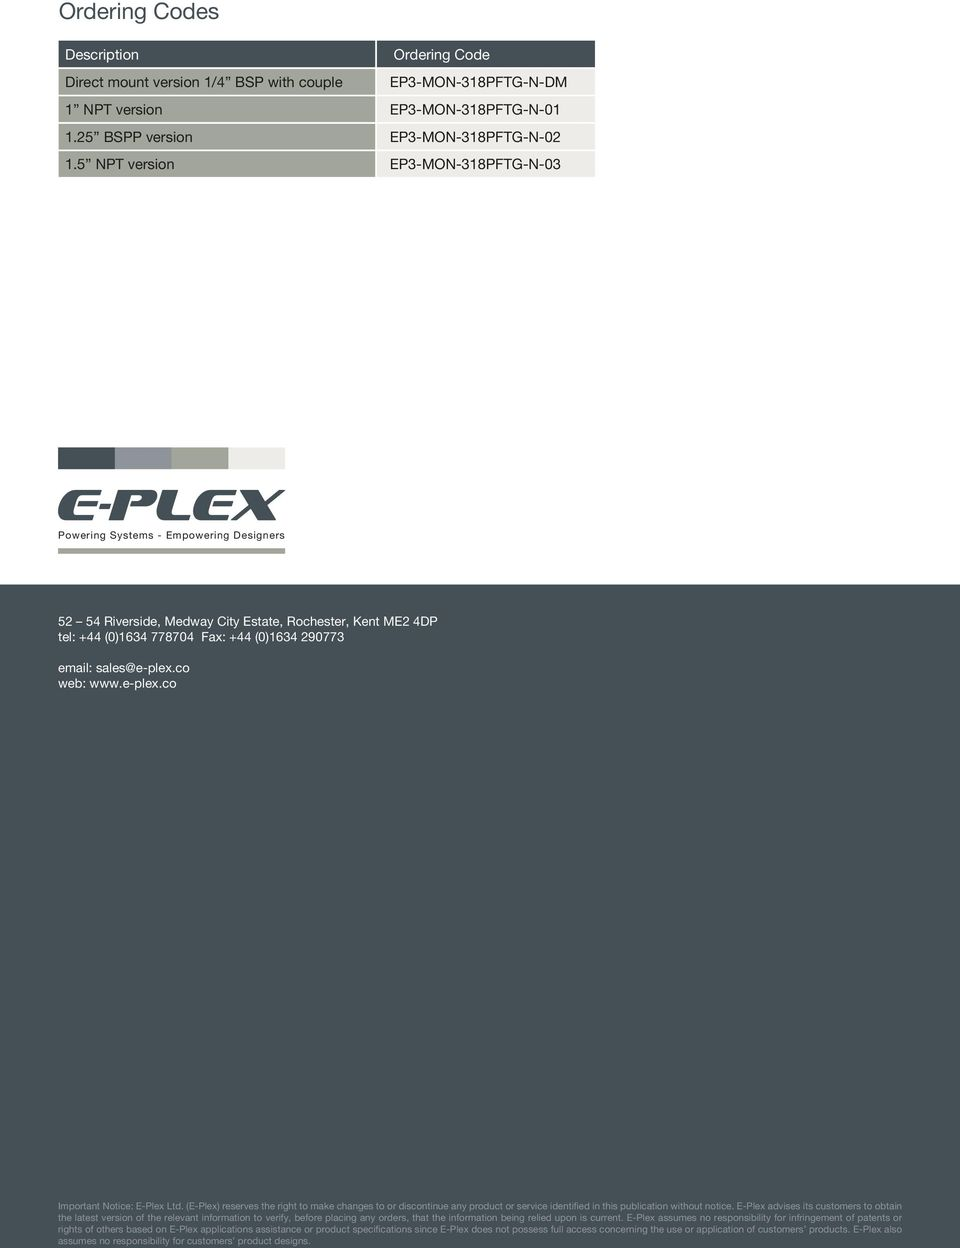 sales@e-plex.co web: www.e-plex.co Important Notice: E-Plex Ltd. (E-Plex) reserves the right to make changes to or discontinue any product or service identified in this publication without notice.